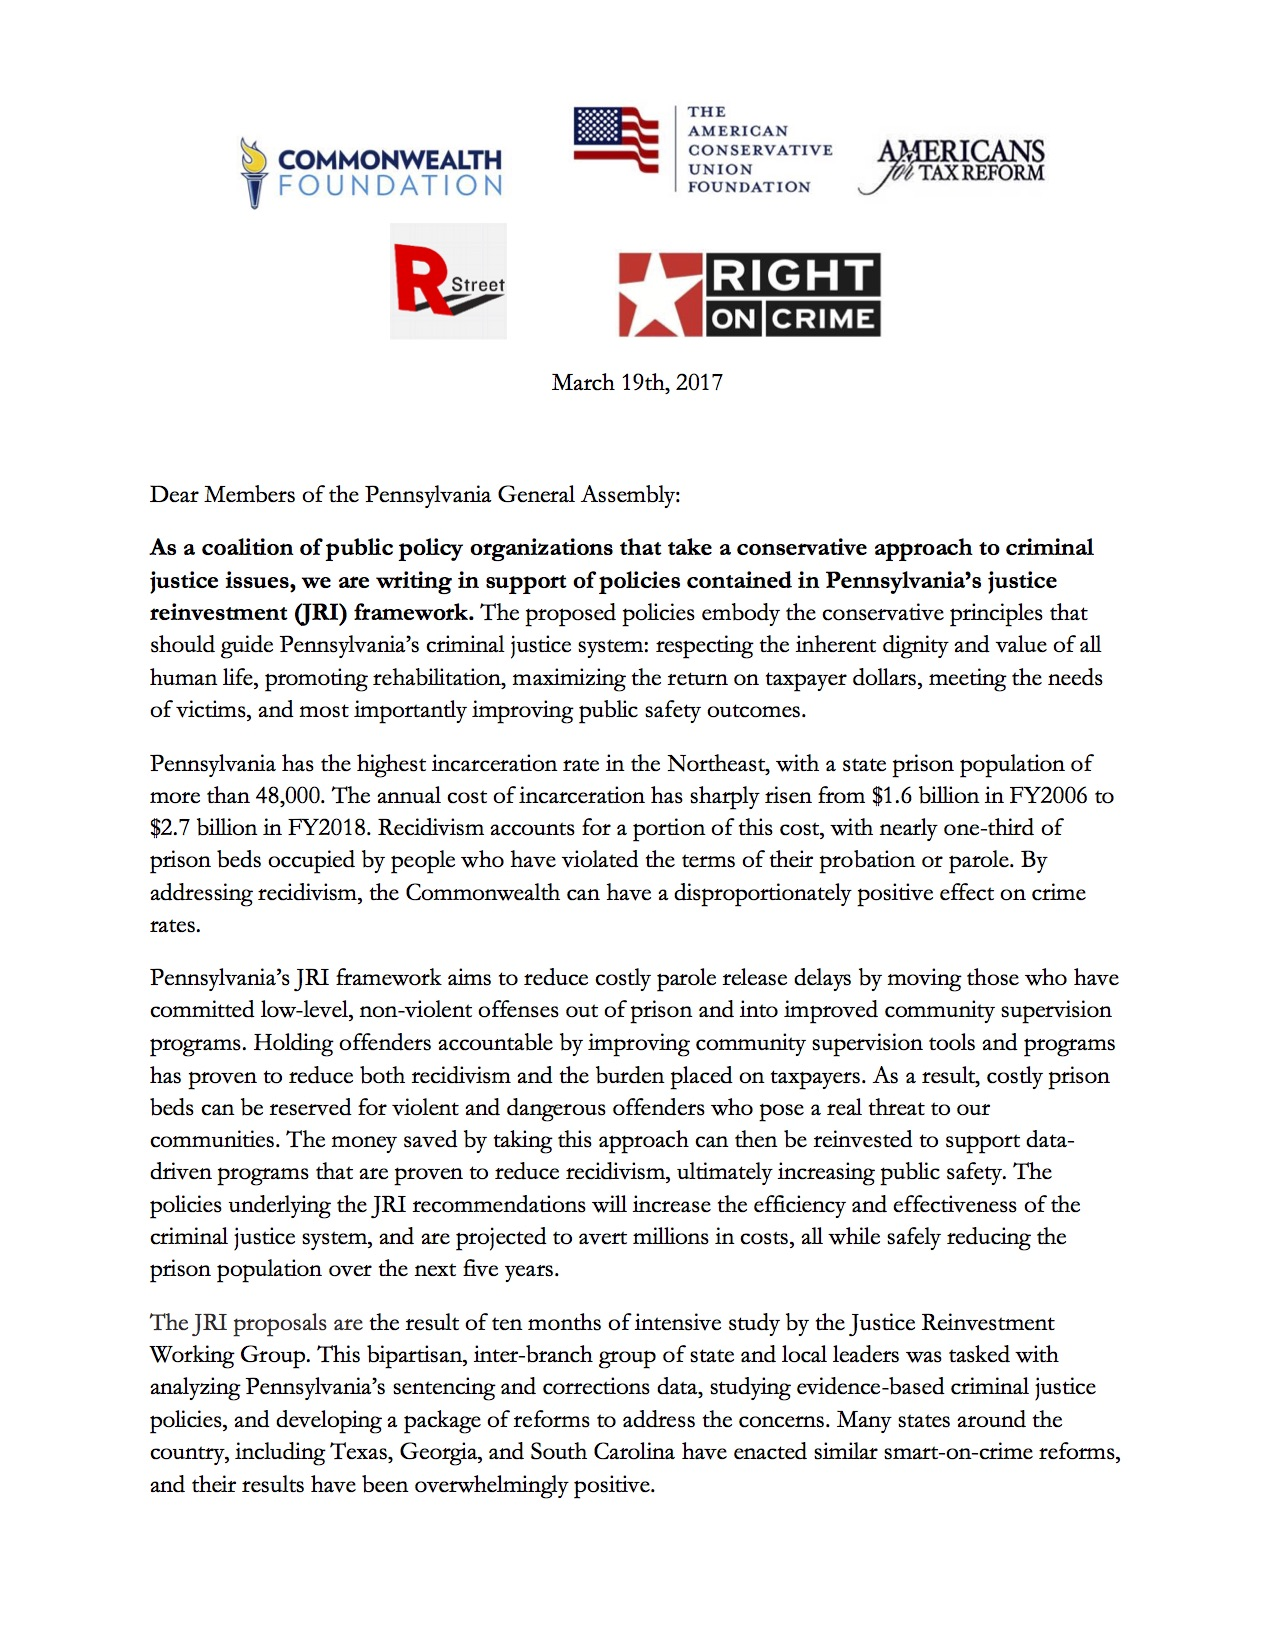 PA_JRI_Support_Coalition_Letter_March_'18_1.jpg